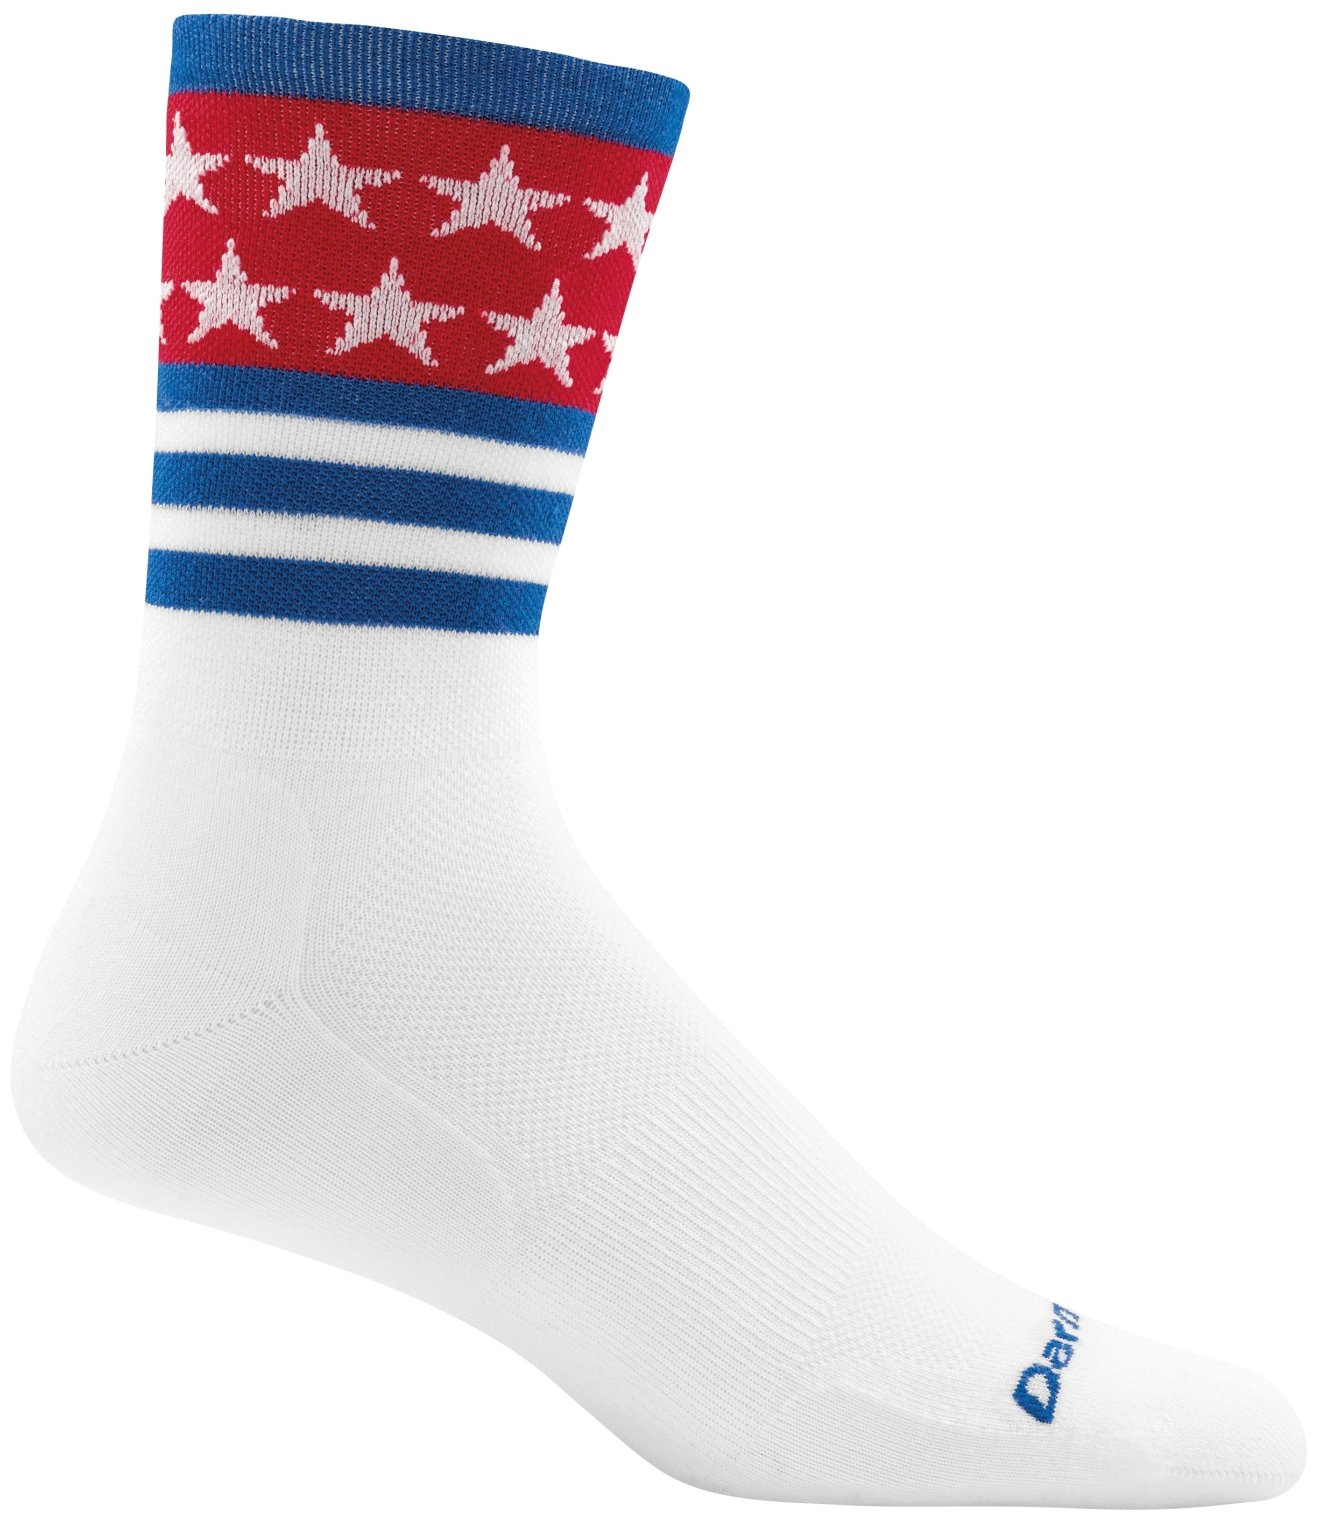 Darn Tough Stars and Stripes Micro Crew Ultralight Sock - Men's White Large by Darn Tough